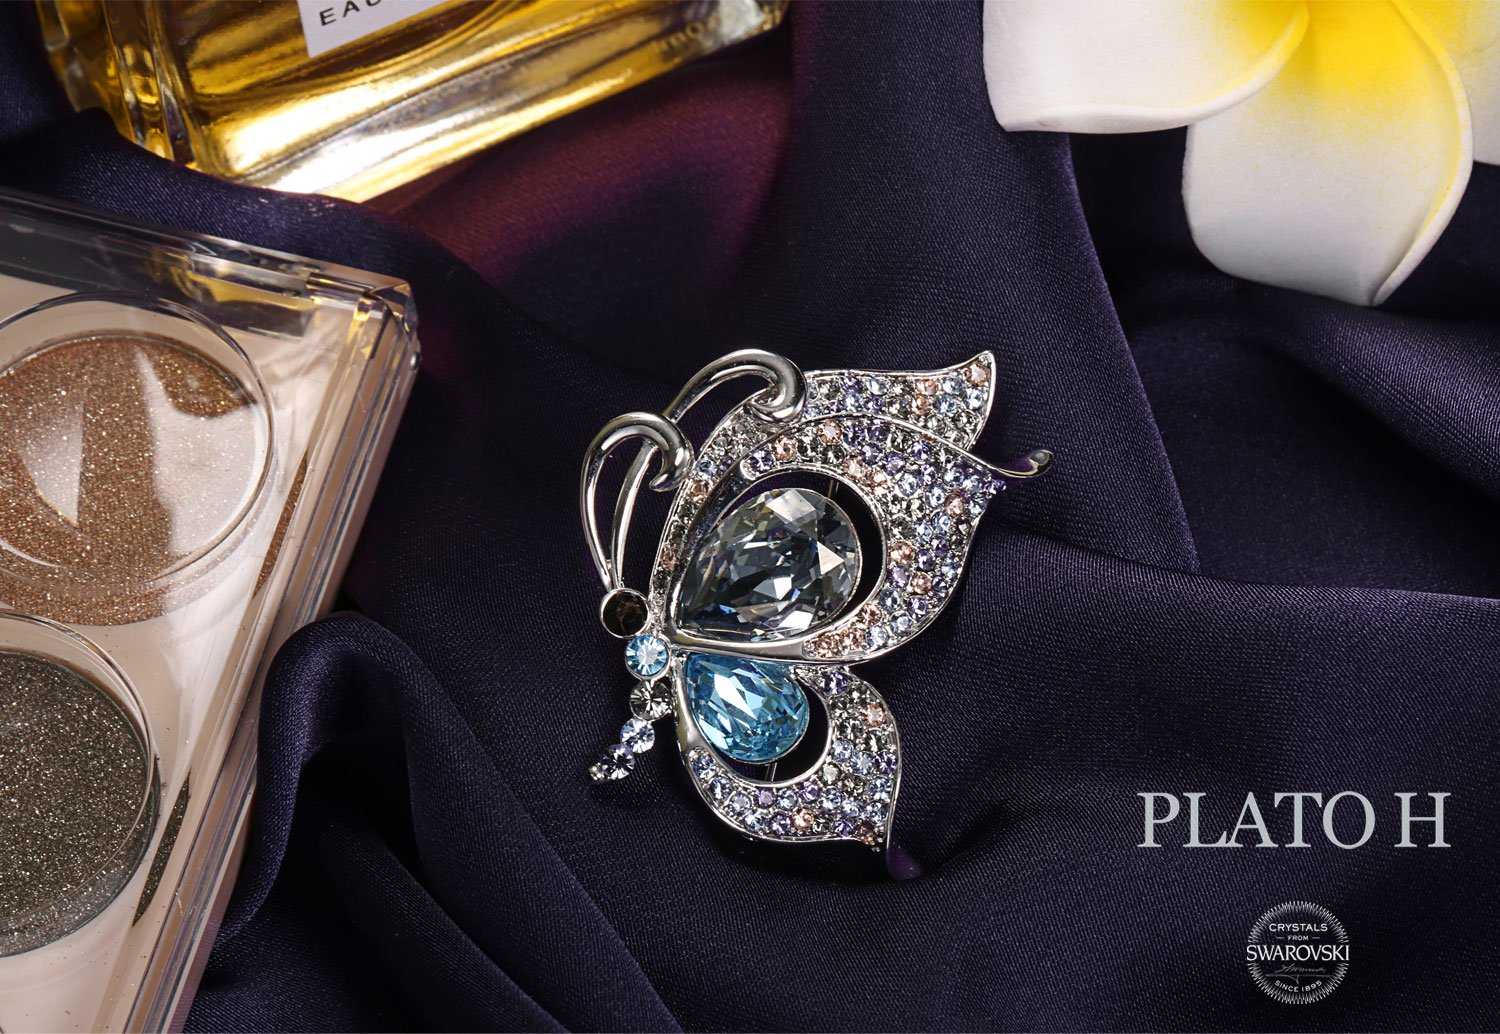 PLATO H Cute Butterfly Crystal Brooch Necklace Elegant Butterfly Brooch with Swarovski Crystals Women Fashion Jewelry Romantic Gift for Her